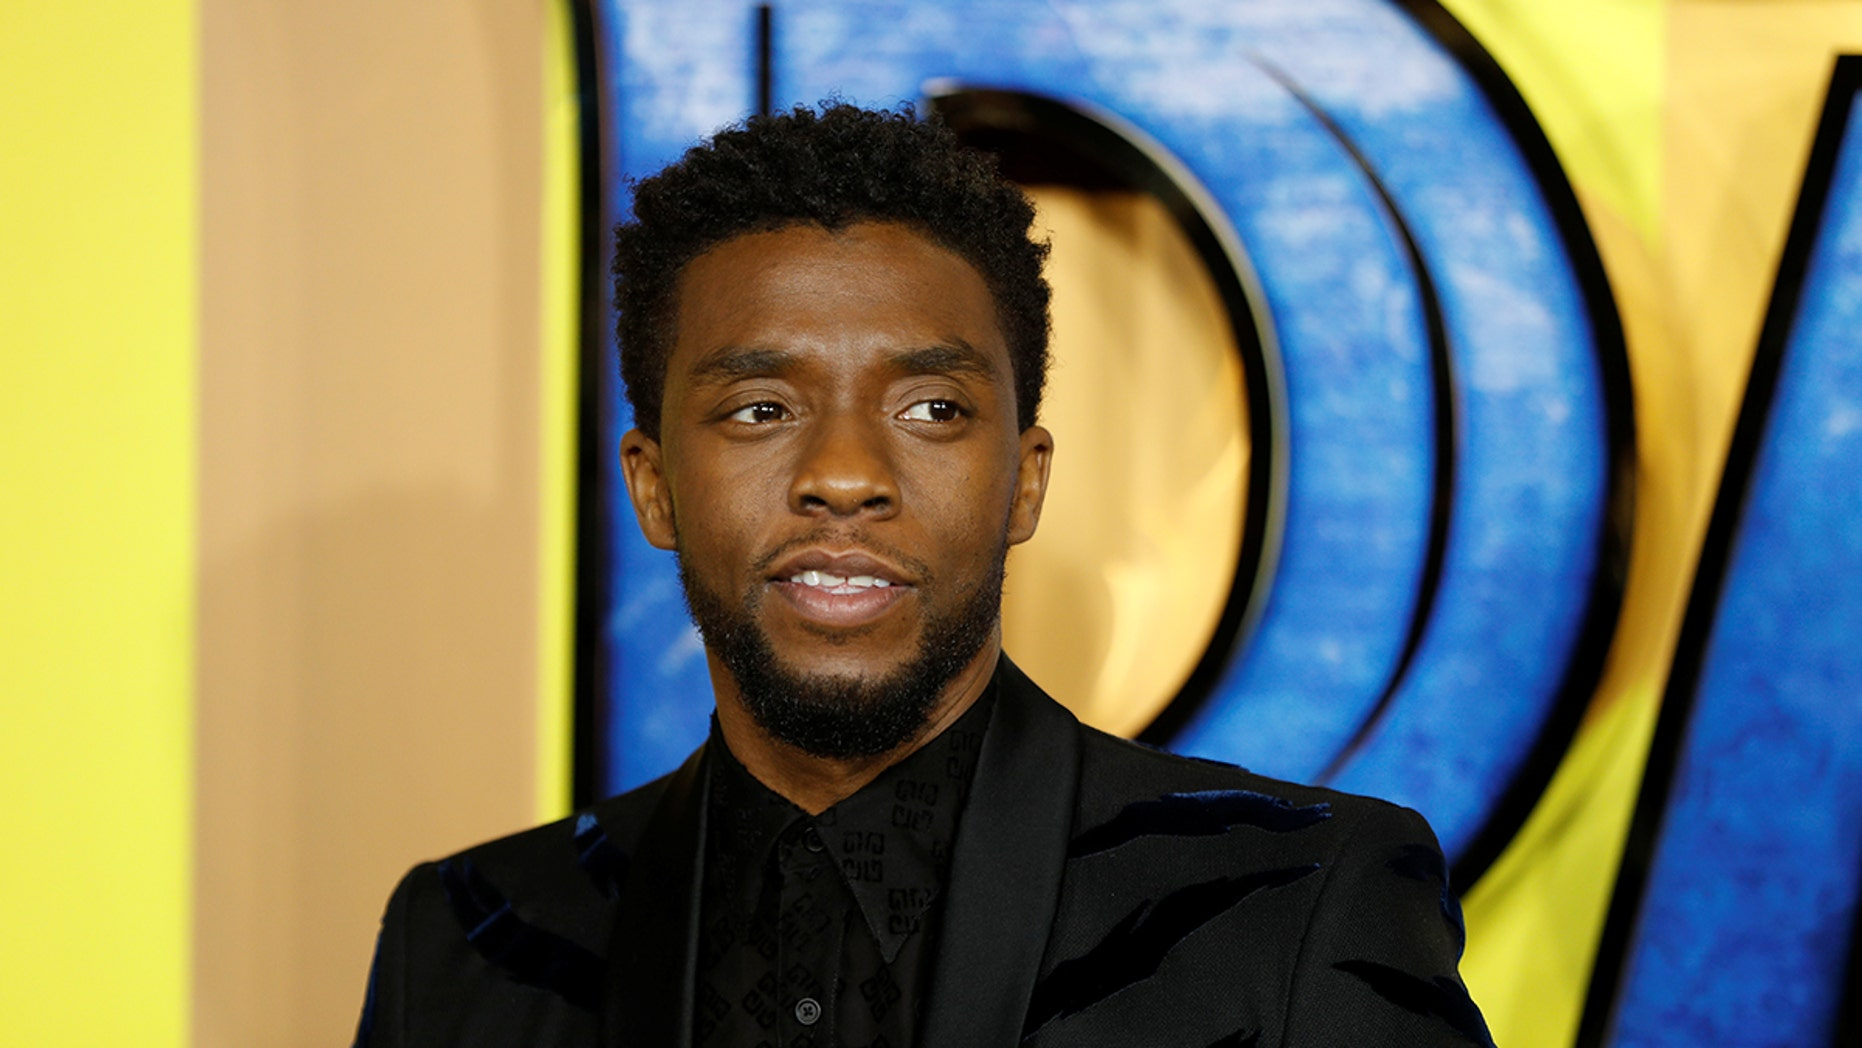 """Chadwick Boseman could win the prize for """"Male Movie Star of 2018"""" when the 2018 E! People's Choice Awards kick off Nov. 11."""